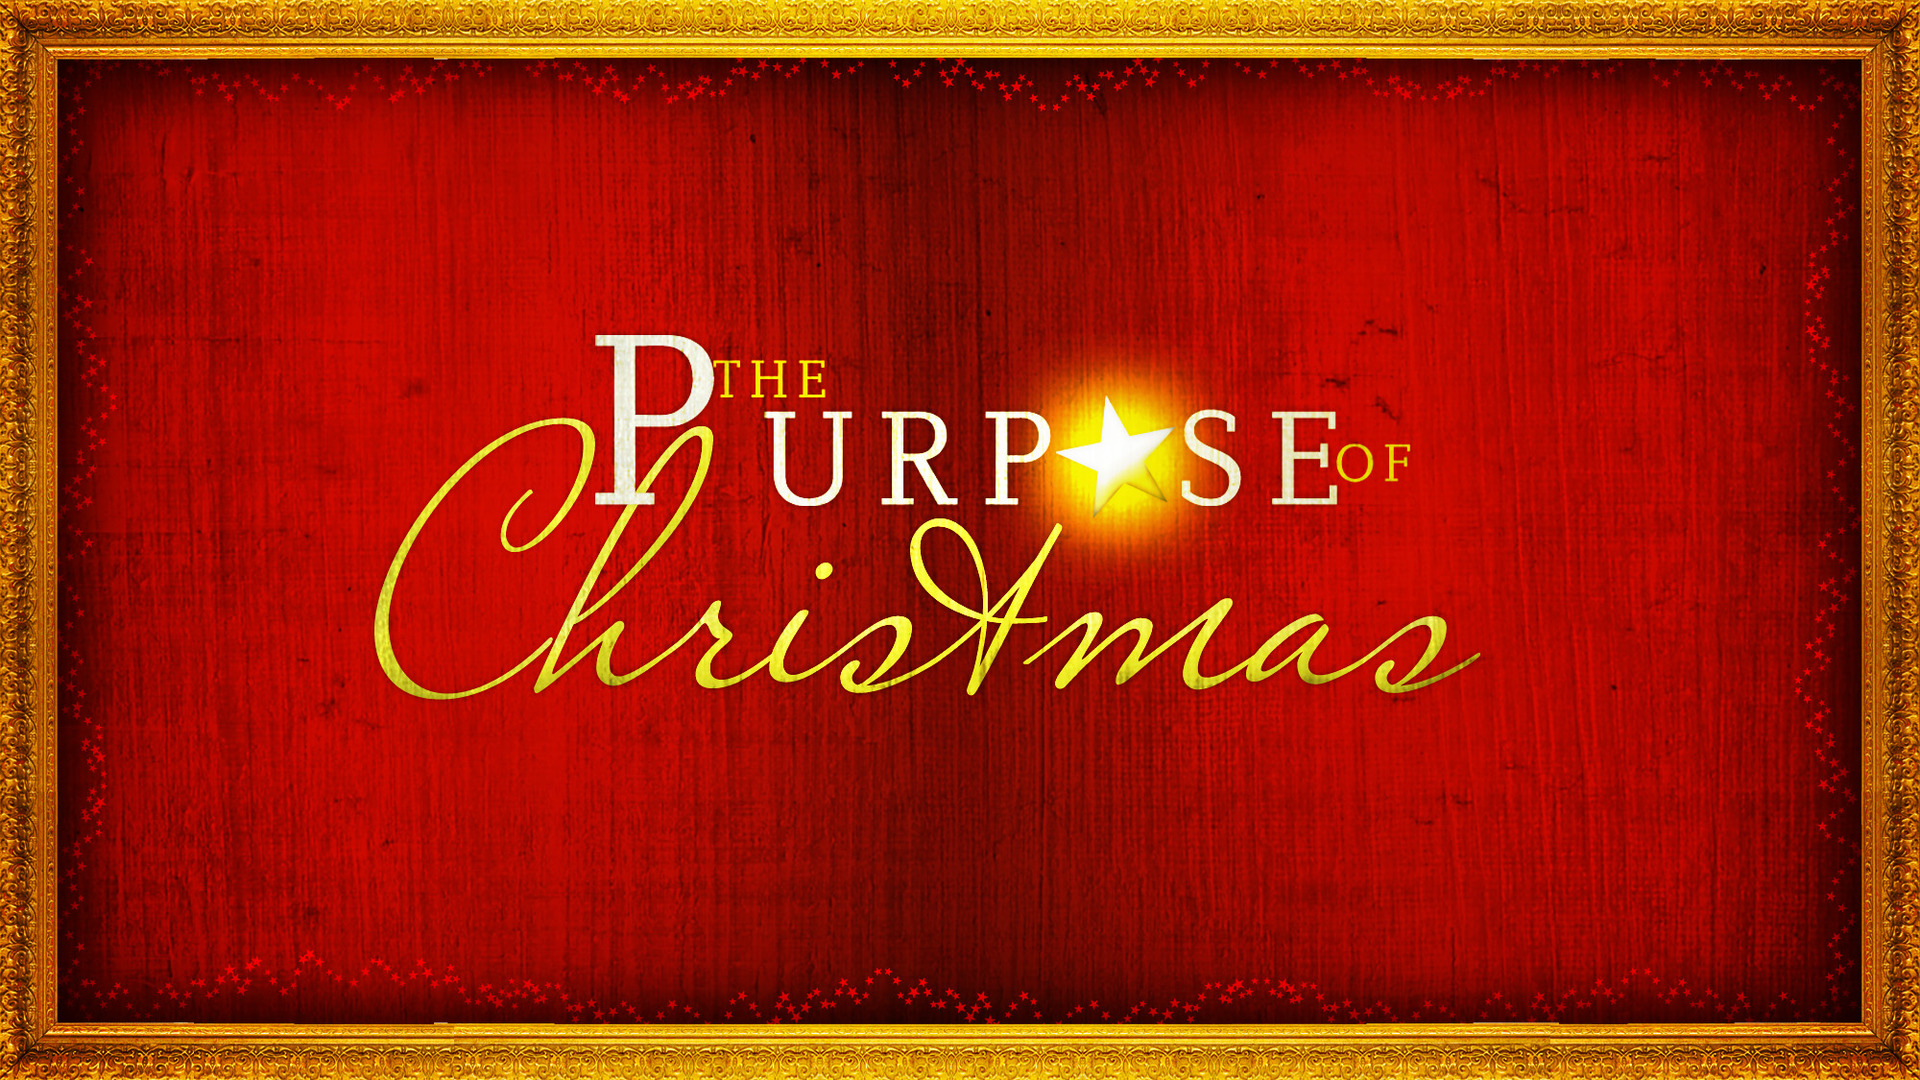 the_purpose_of_christmas-title-2-still-16x9.jpeg